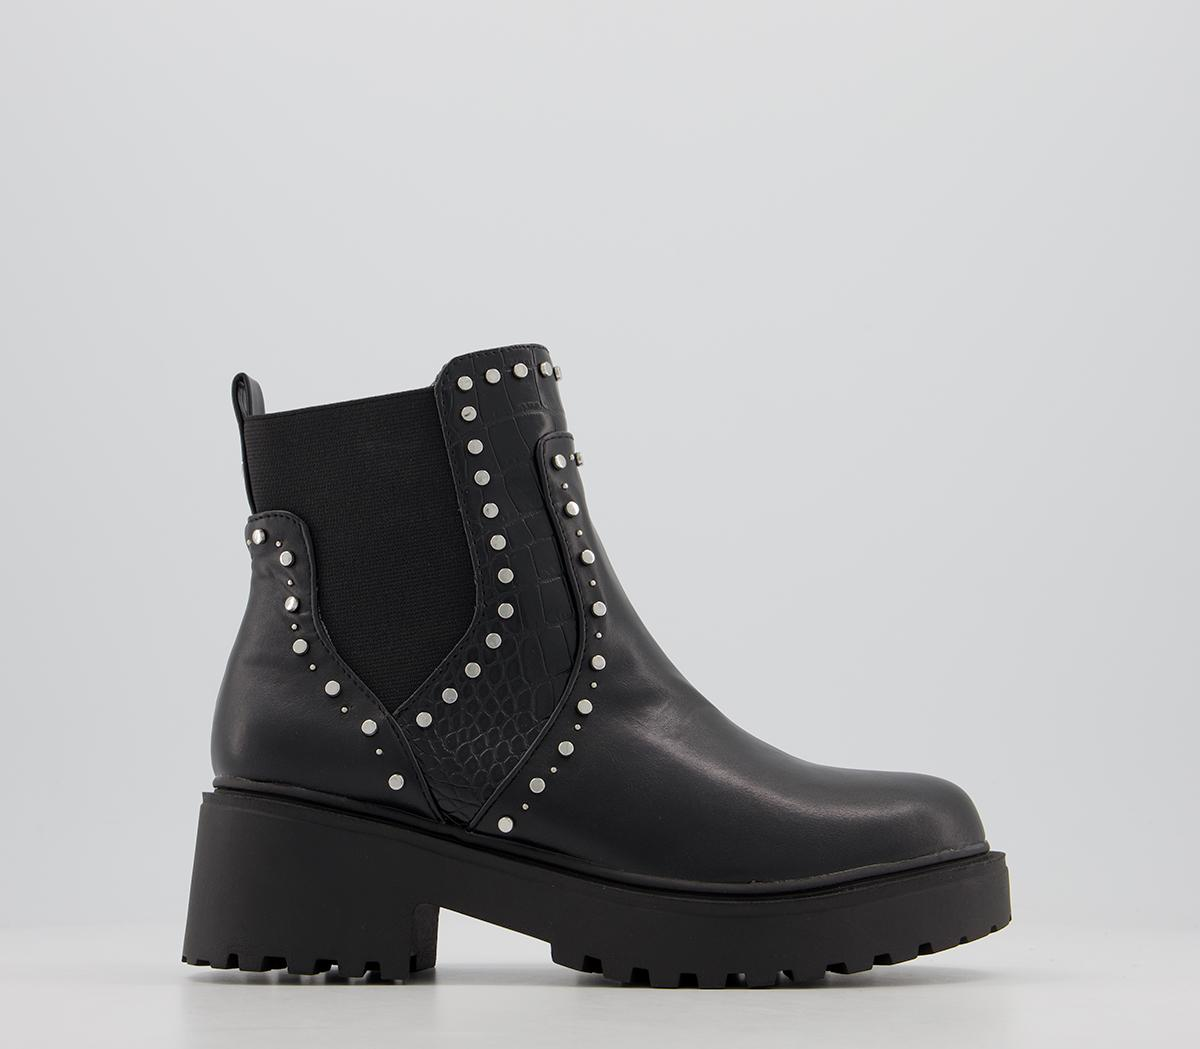 Above Studded Chelsea Ankle Boots